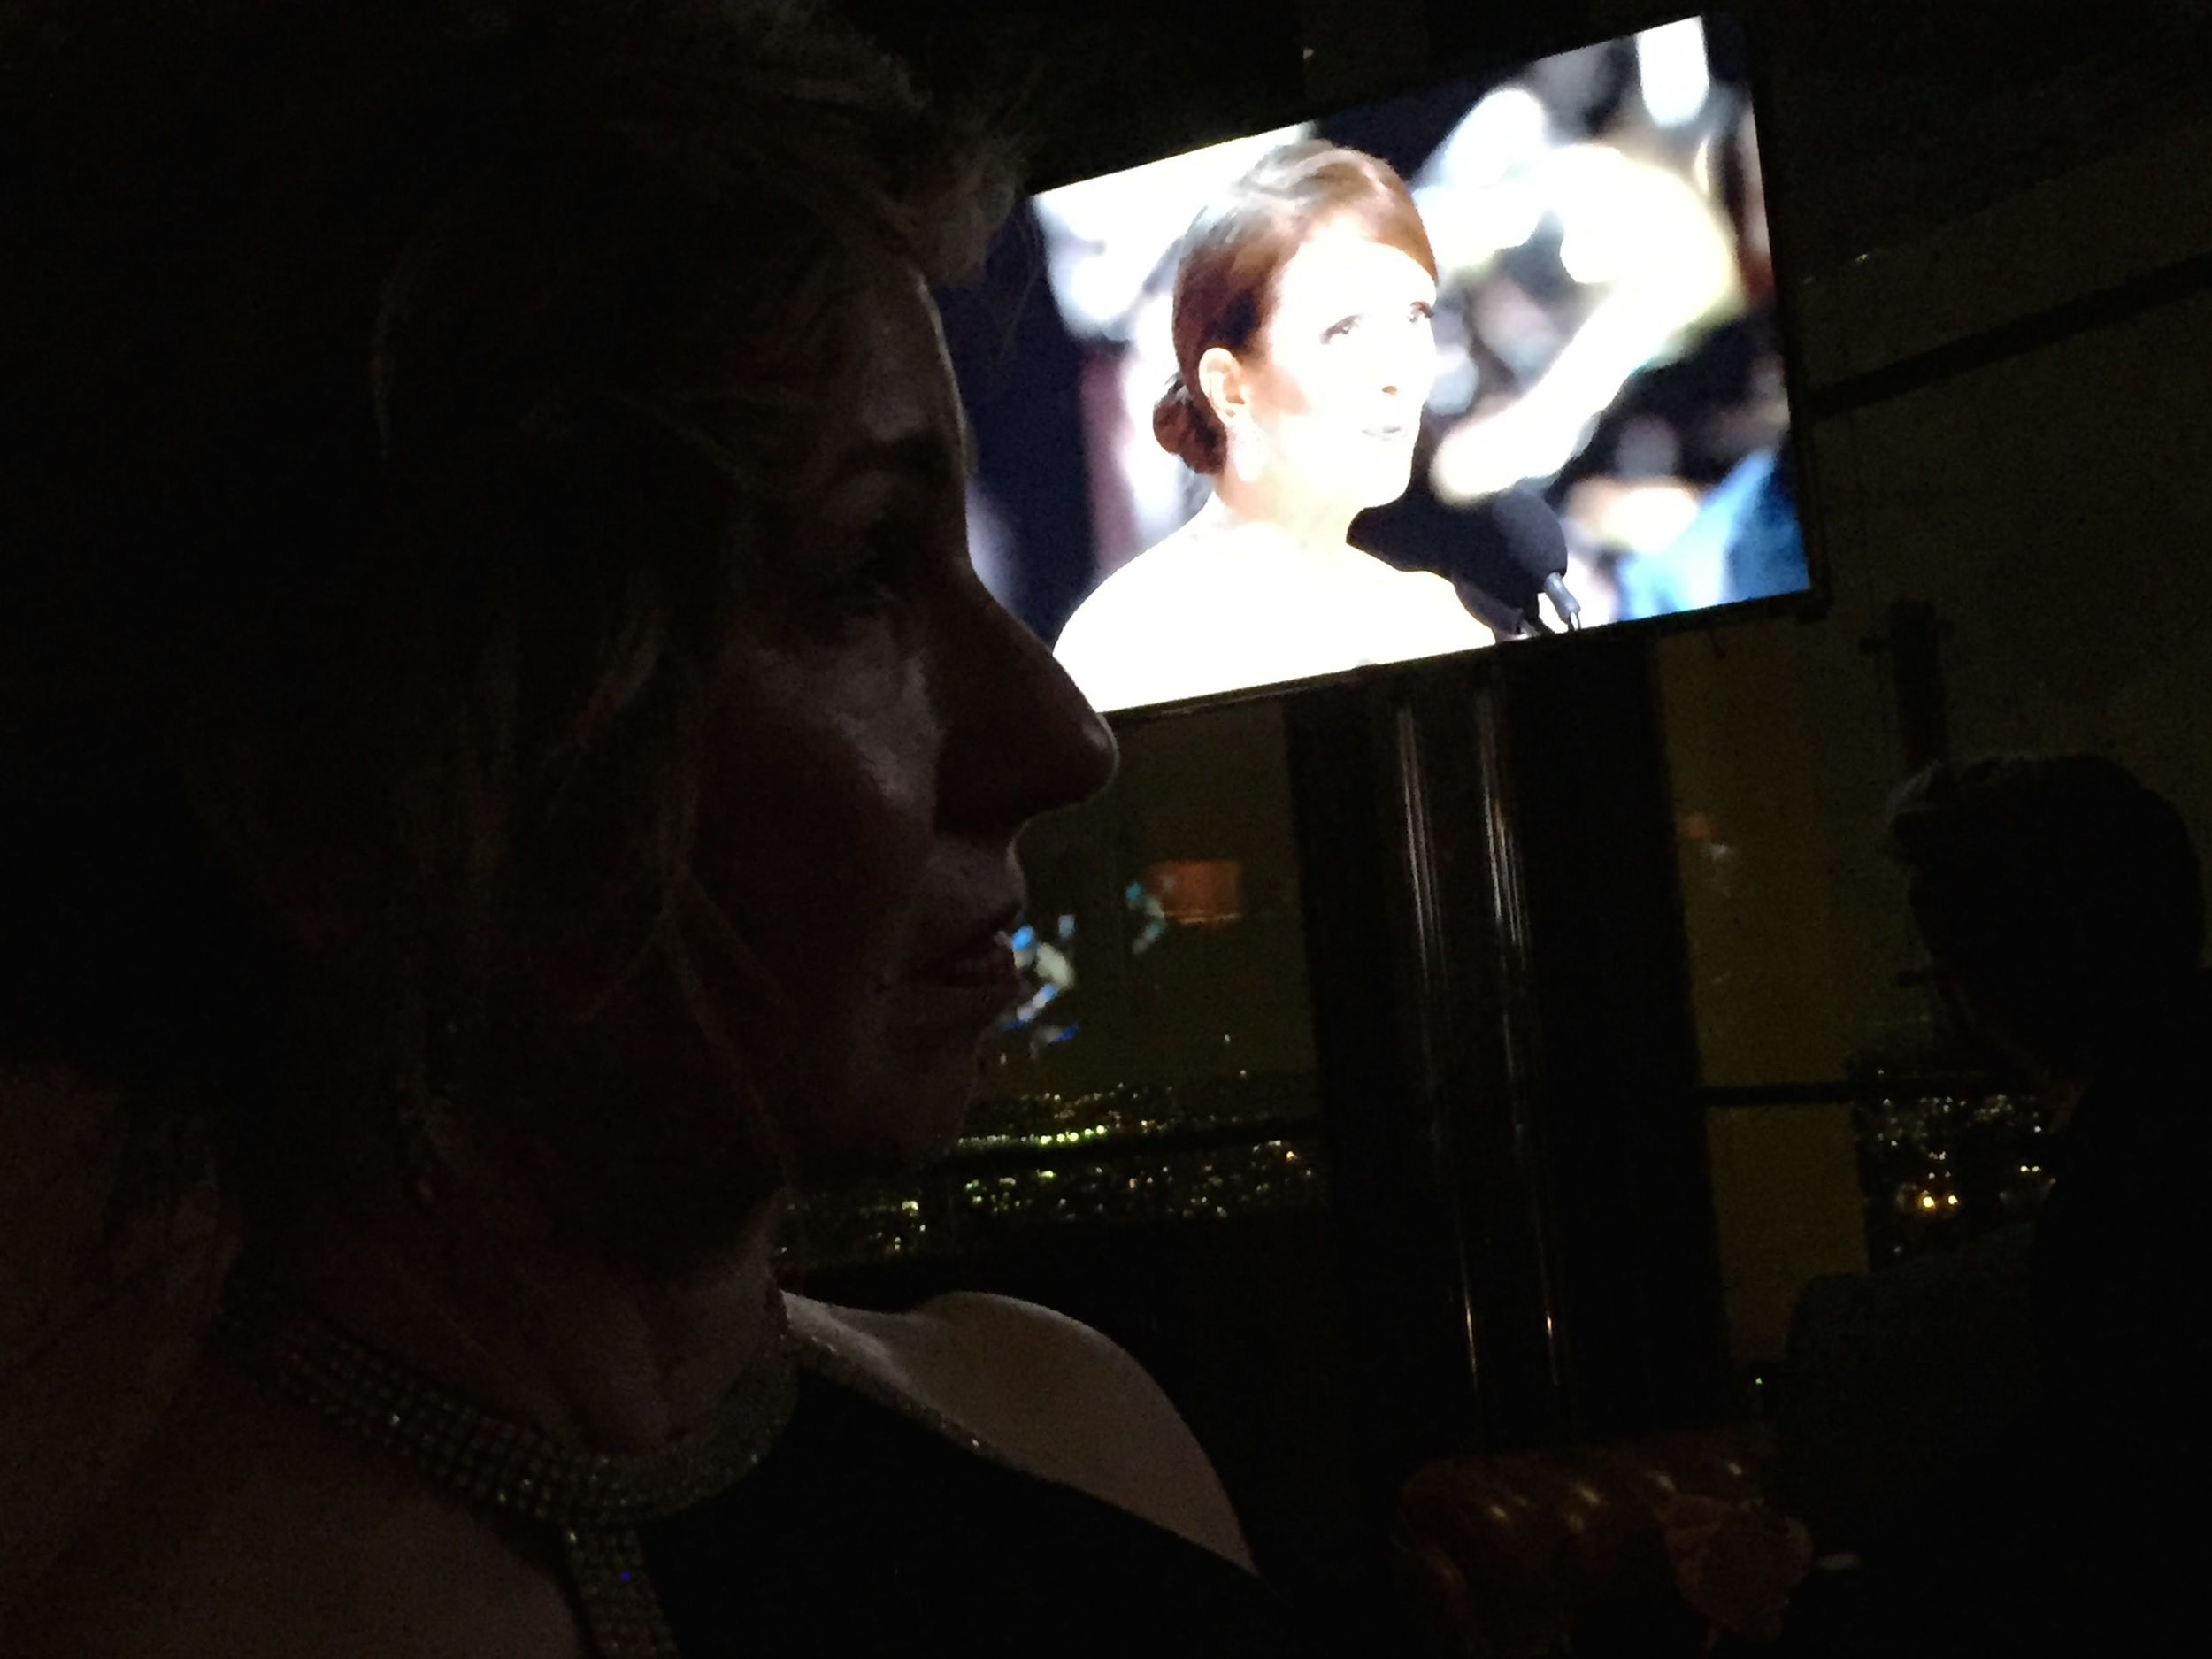 Catherine at Harvey Weinstein's Viewing Party with Julianne Moore accepting her Oscar.